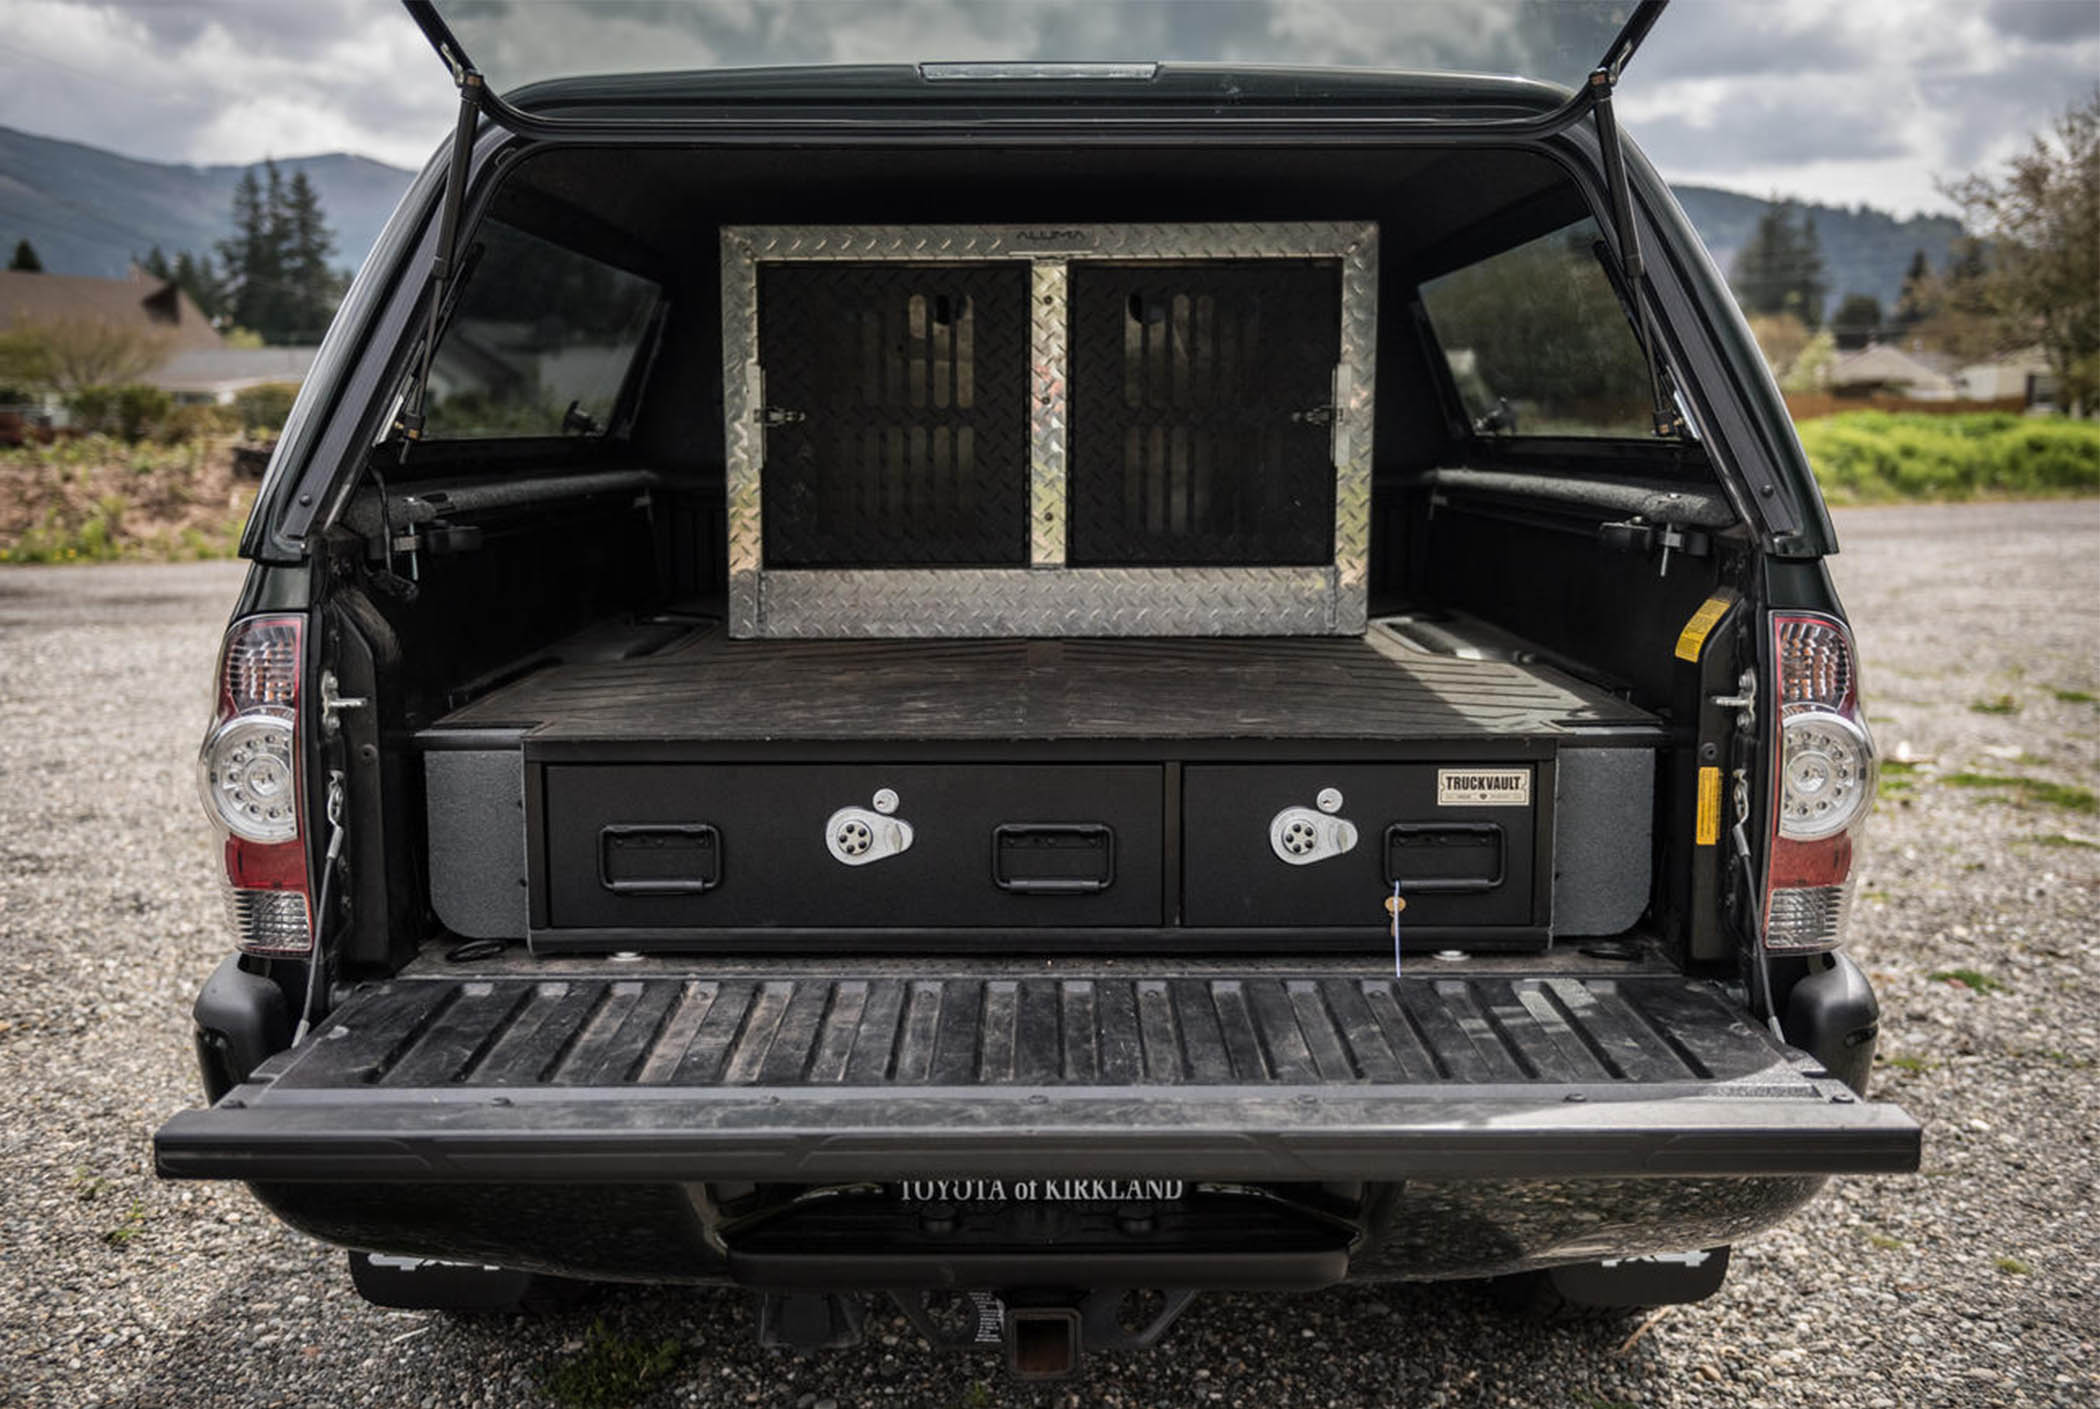 A covered bed TruckVault system for secure bird hunting storage.